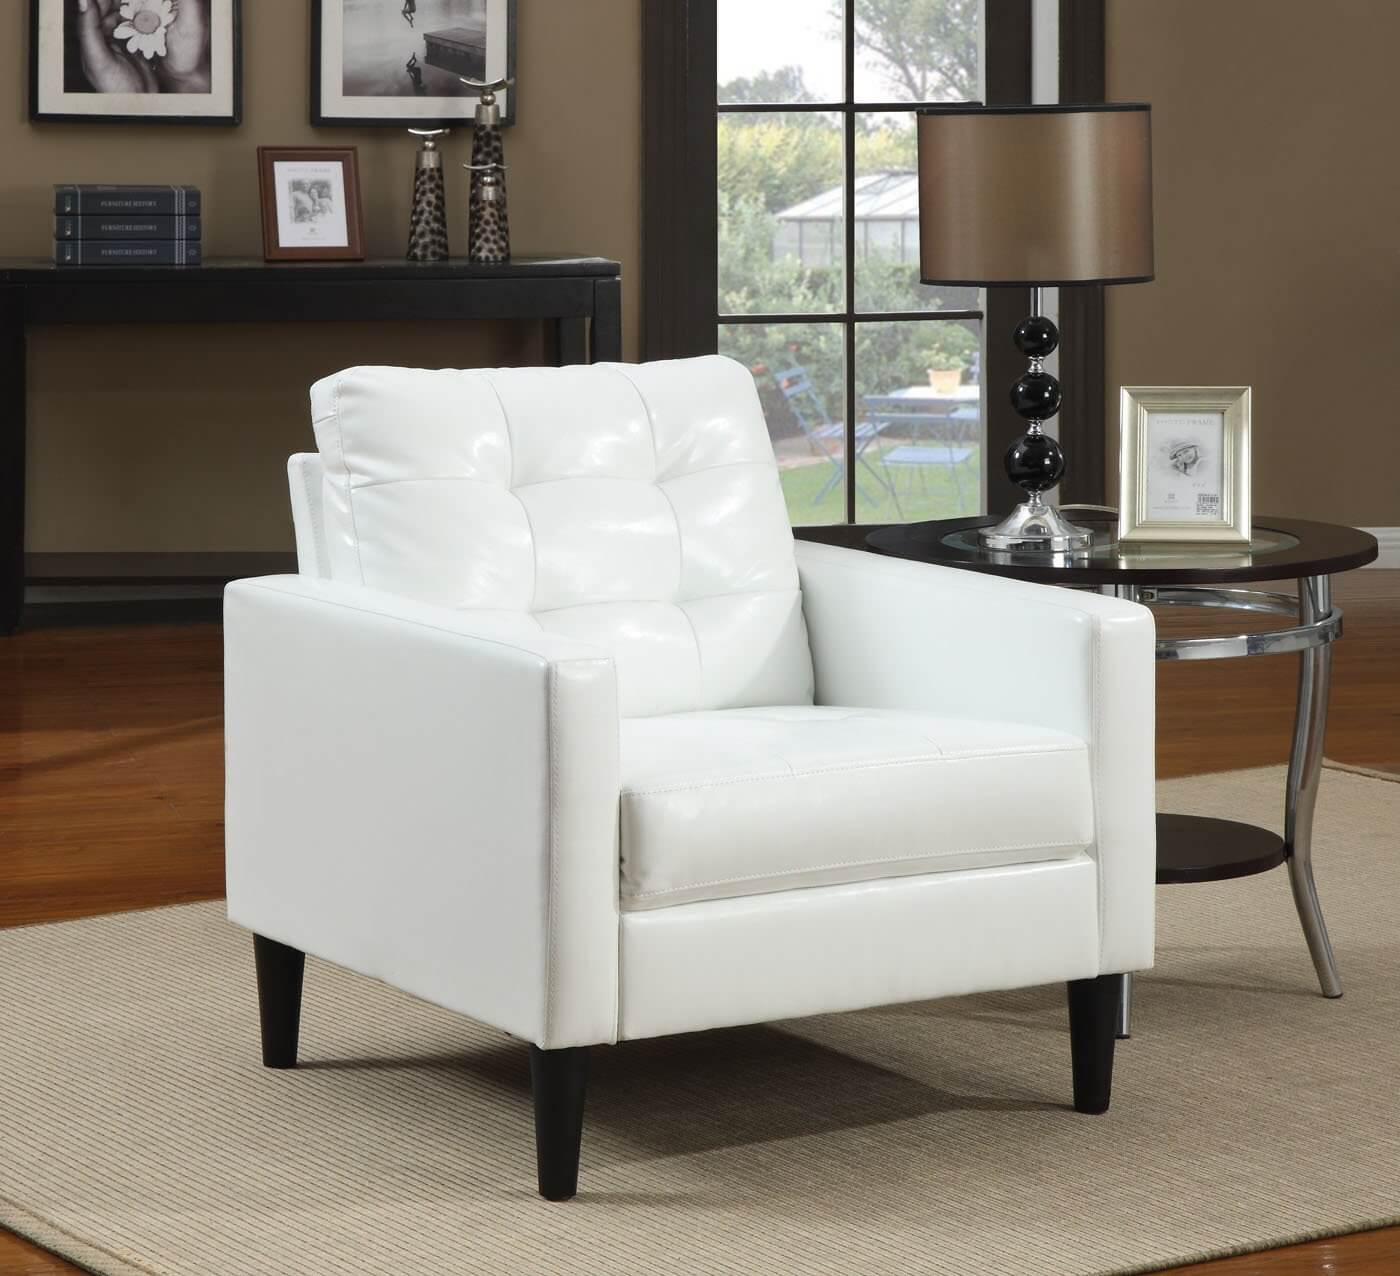 Alto Modern High Back Leather Sofa Collection In White: 37 White Modern Accent Chairs For The Living Room